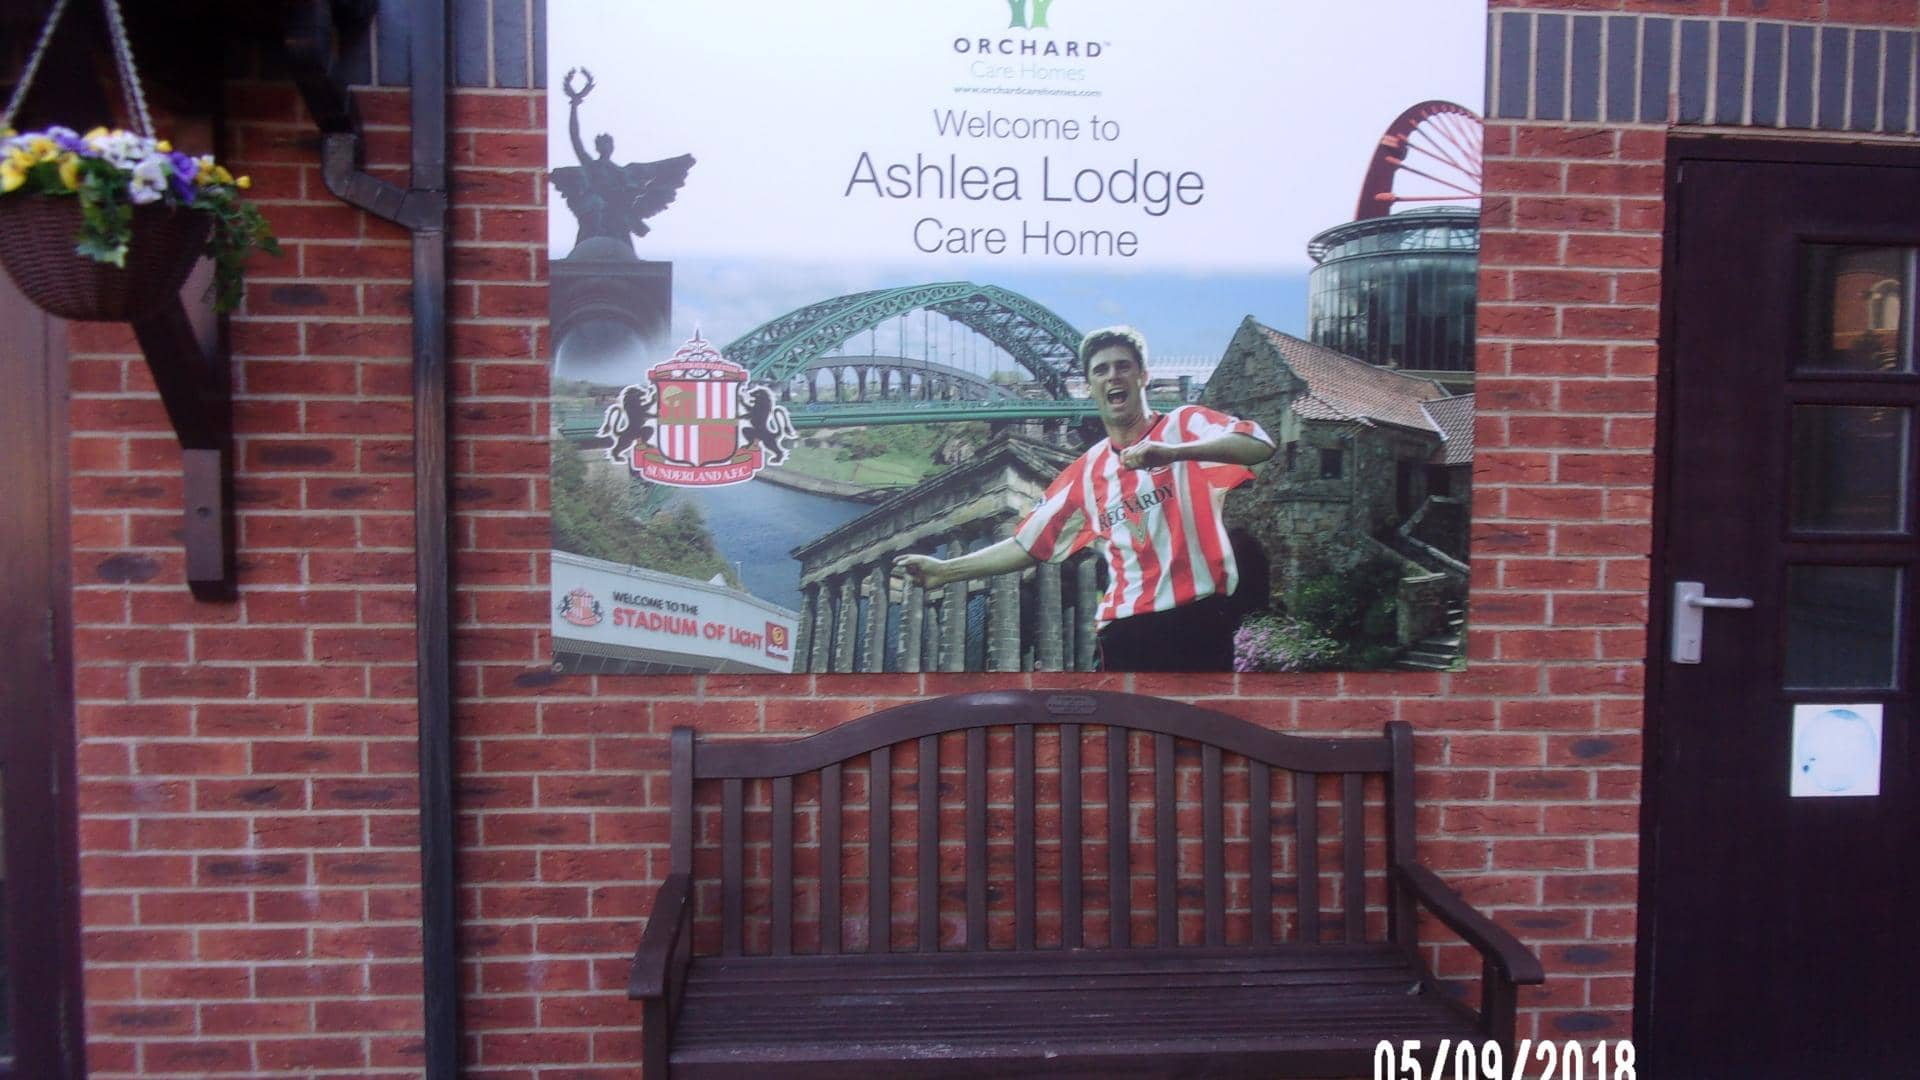 Ashlea Lodge